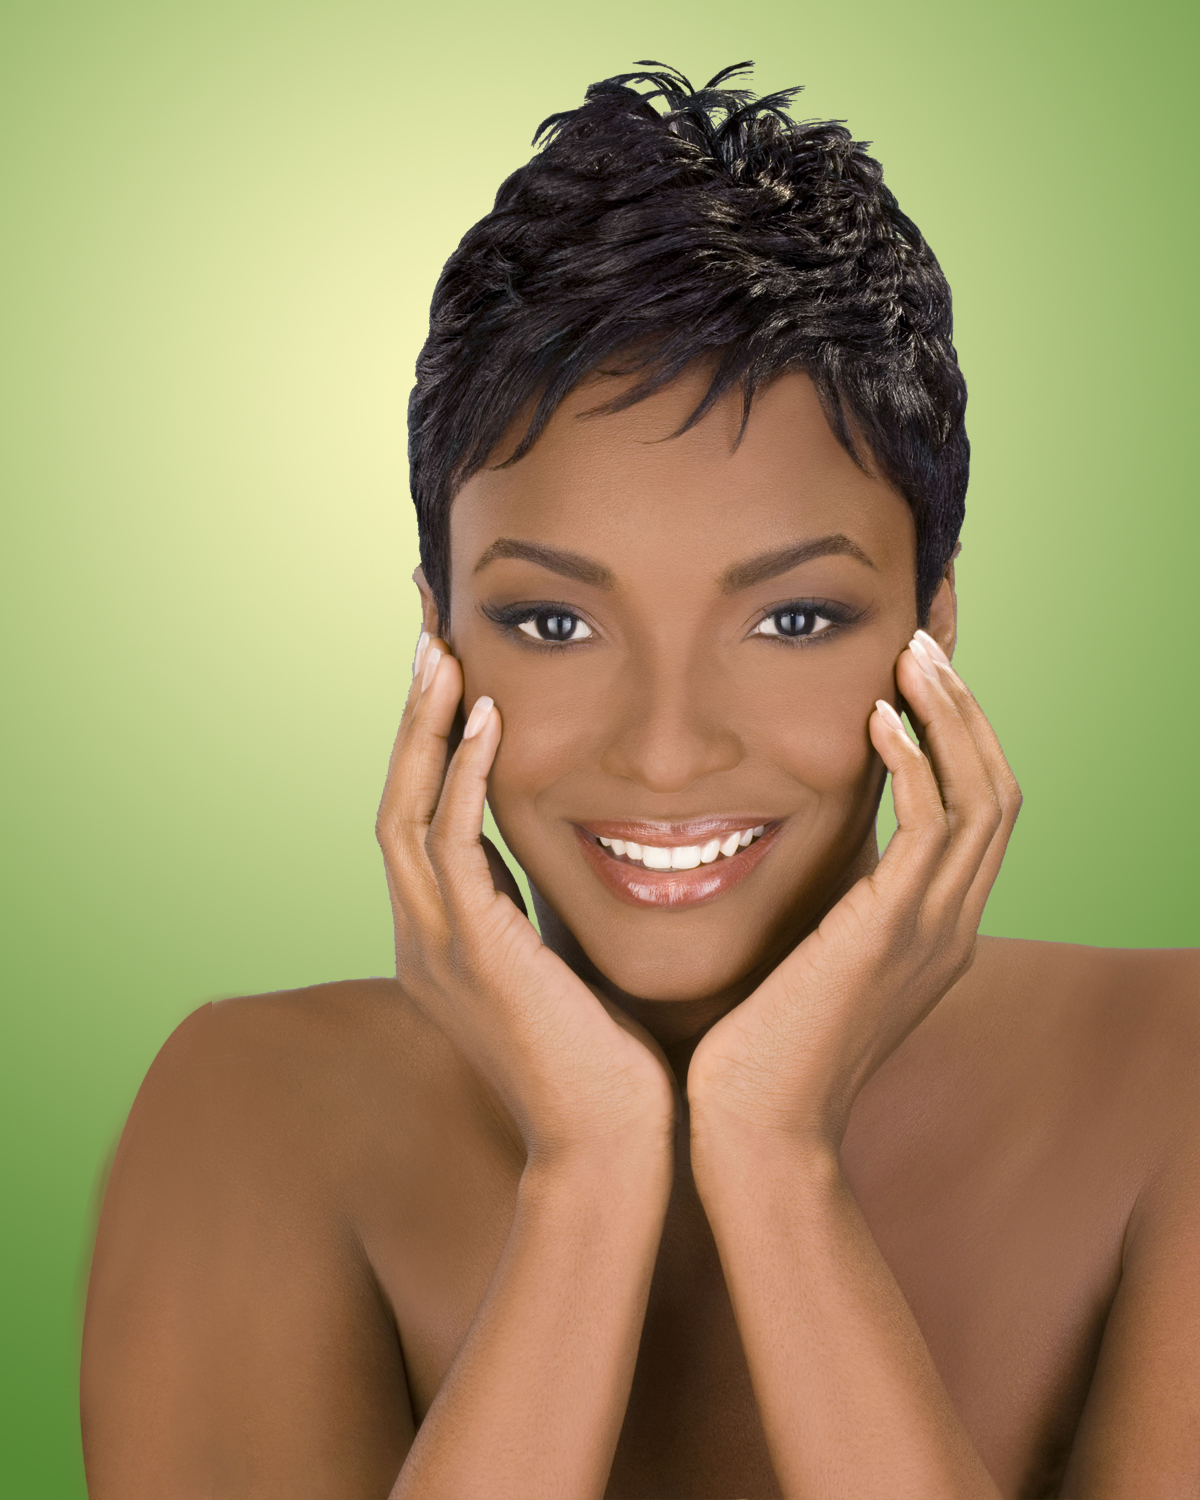 short hairstyles for black women photo - 8